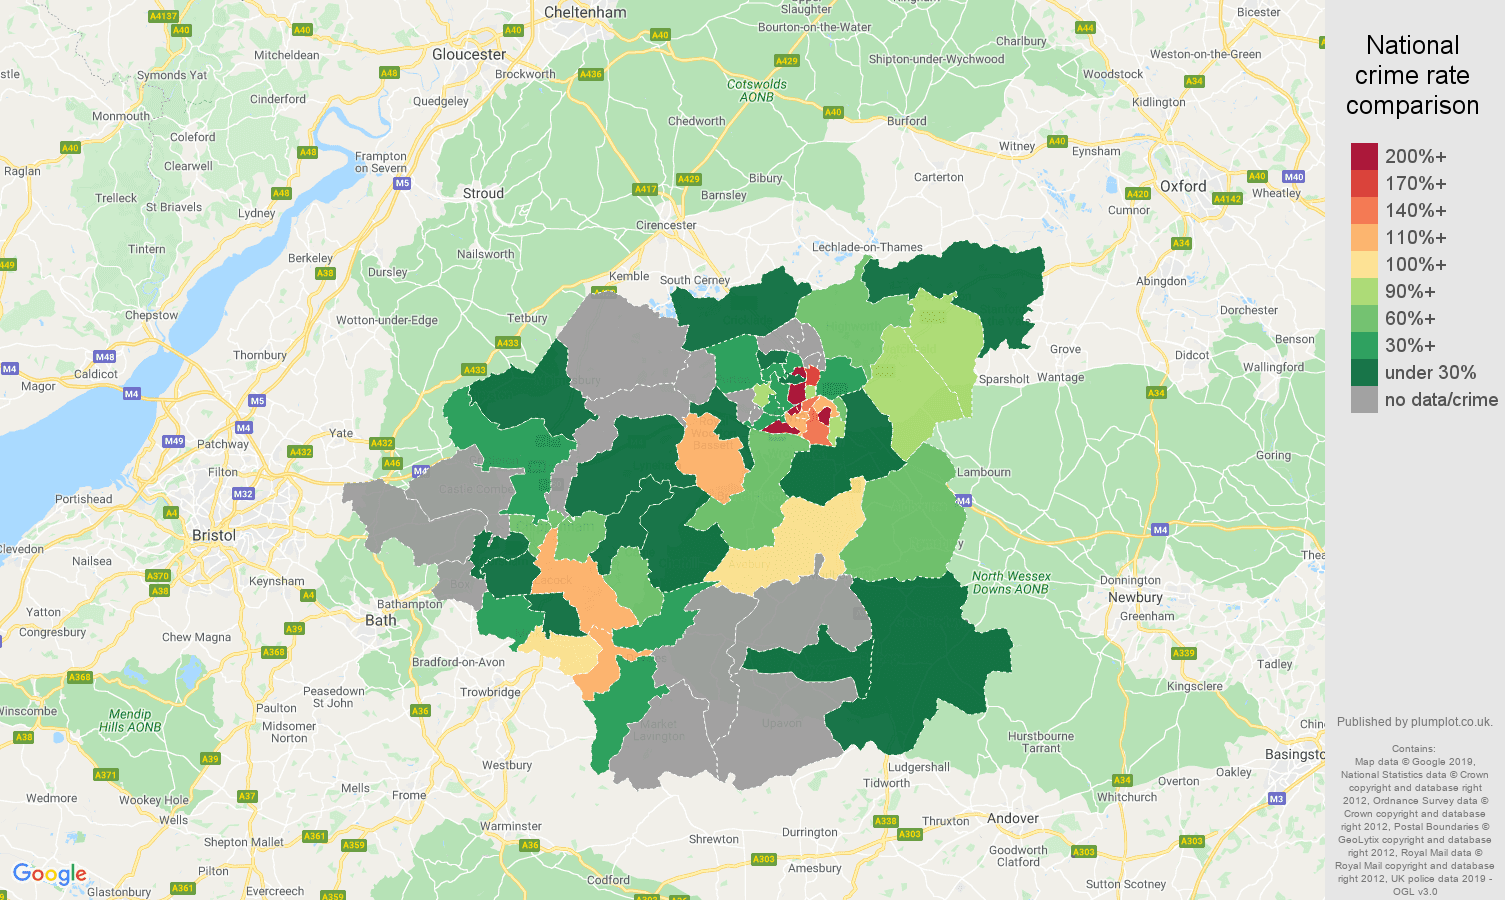 Swindon possession of weapons crime rate comparison map